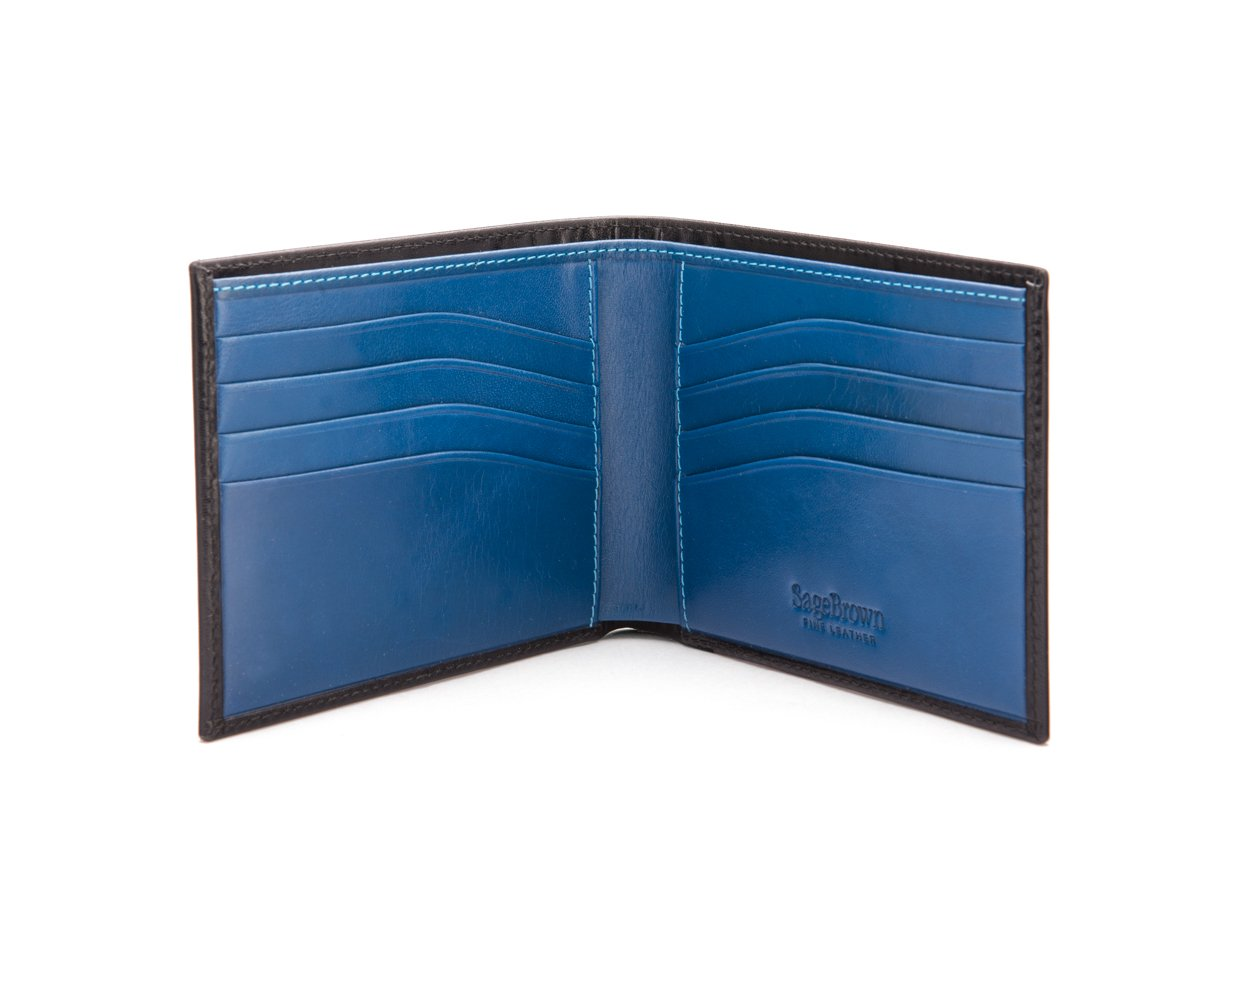 SAGEBROWN Black With Cobalt Compact Classic Bill fold Wallet